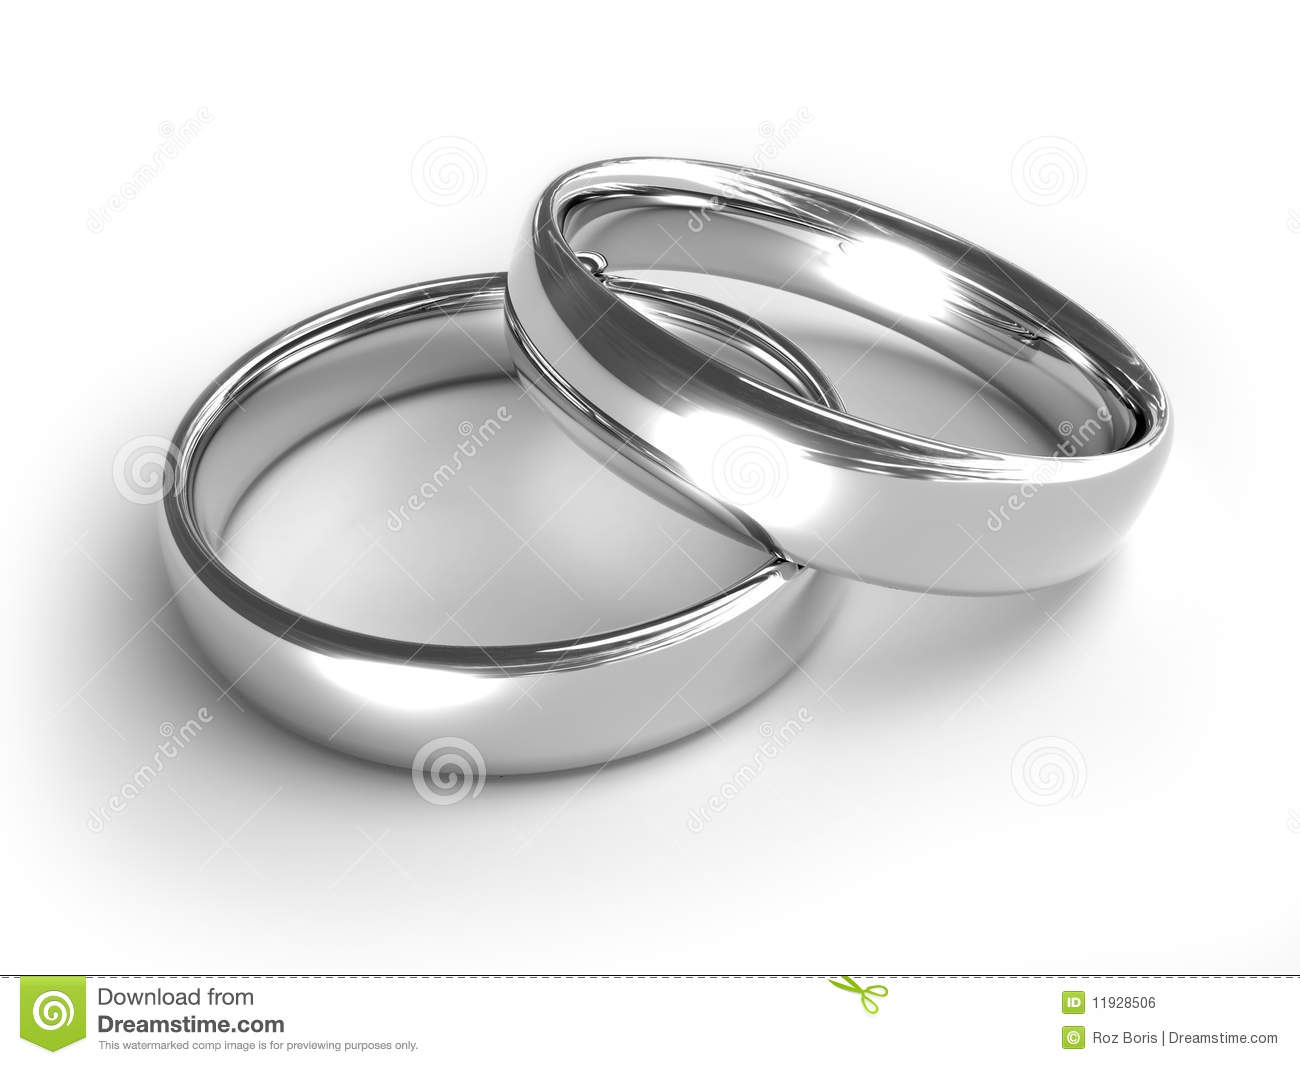 Silver Rings Royalty Free Stock Image - Image: 11928506